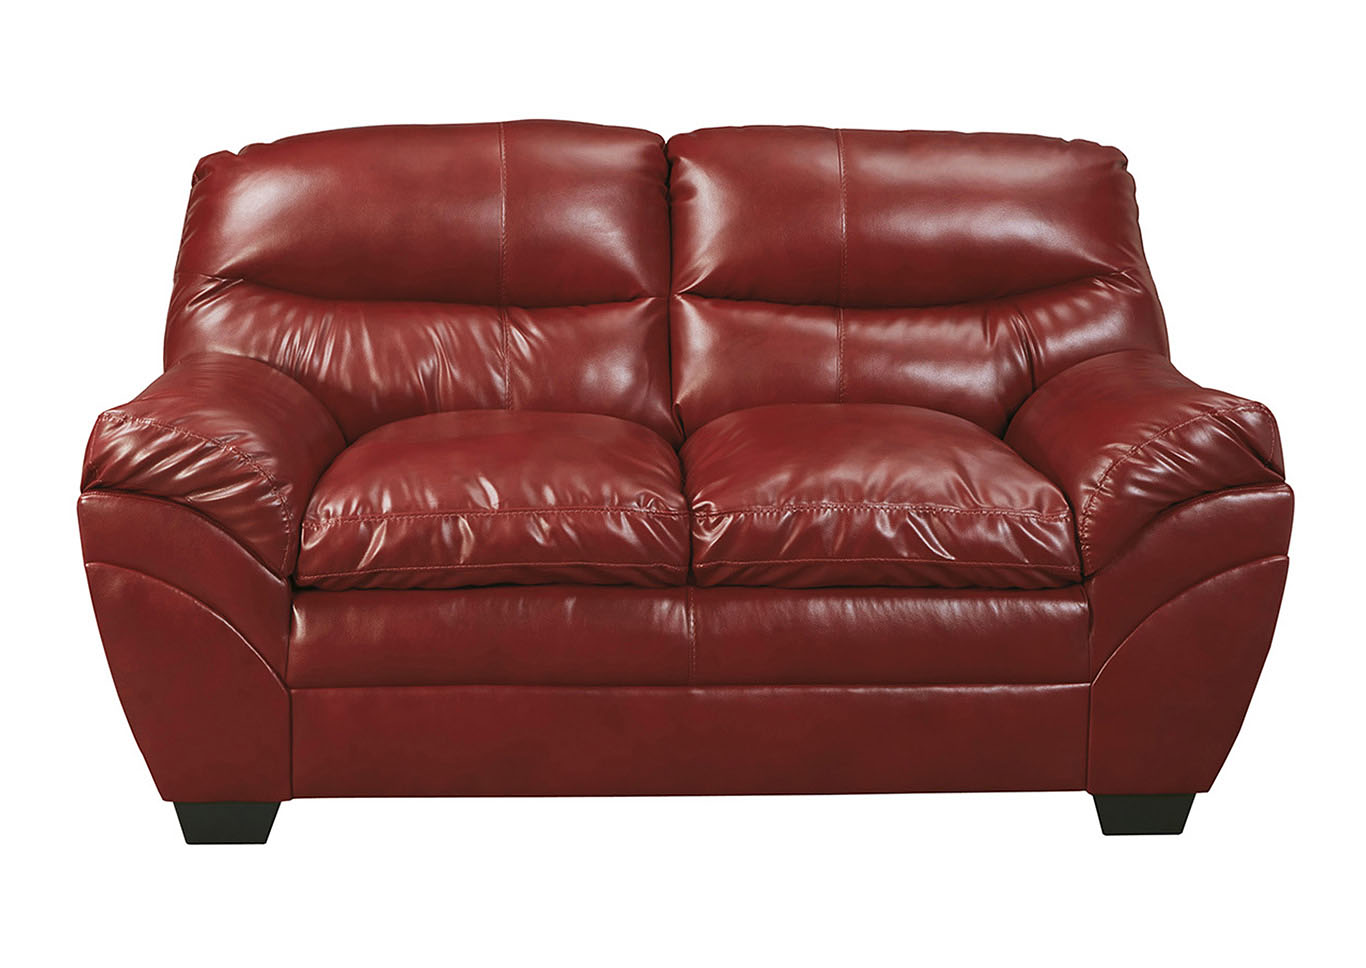 Tassler DuraBlend Crimson Loveseat,Signature Design by Ashley